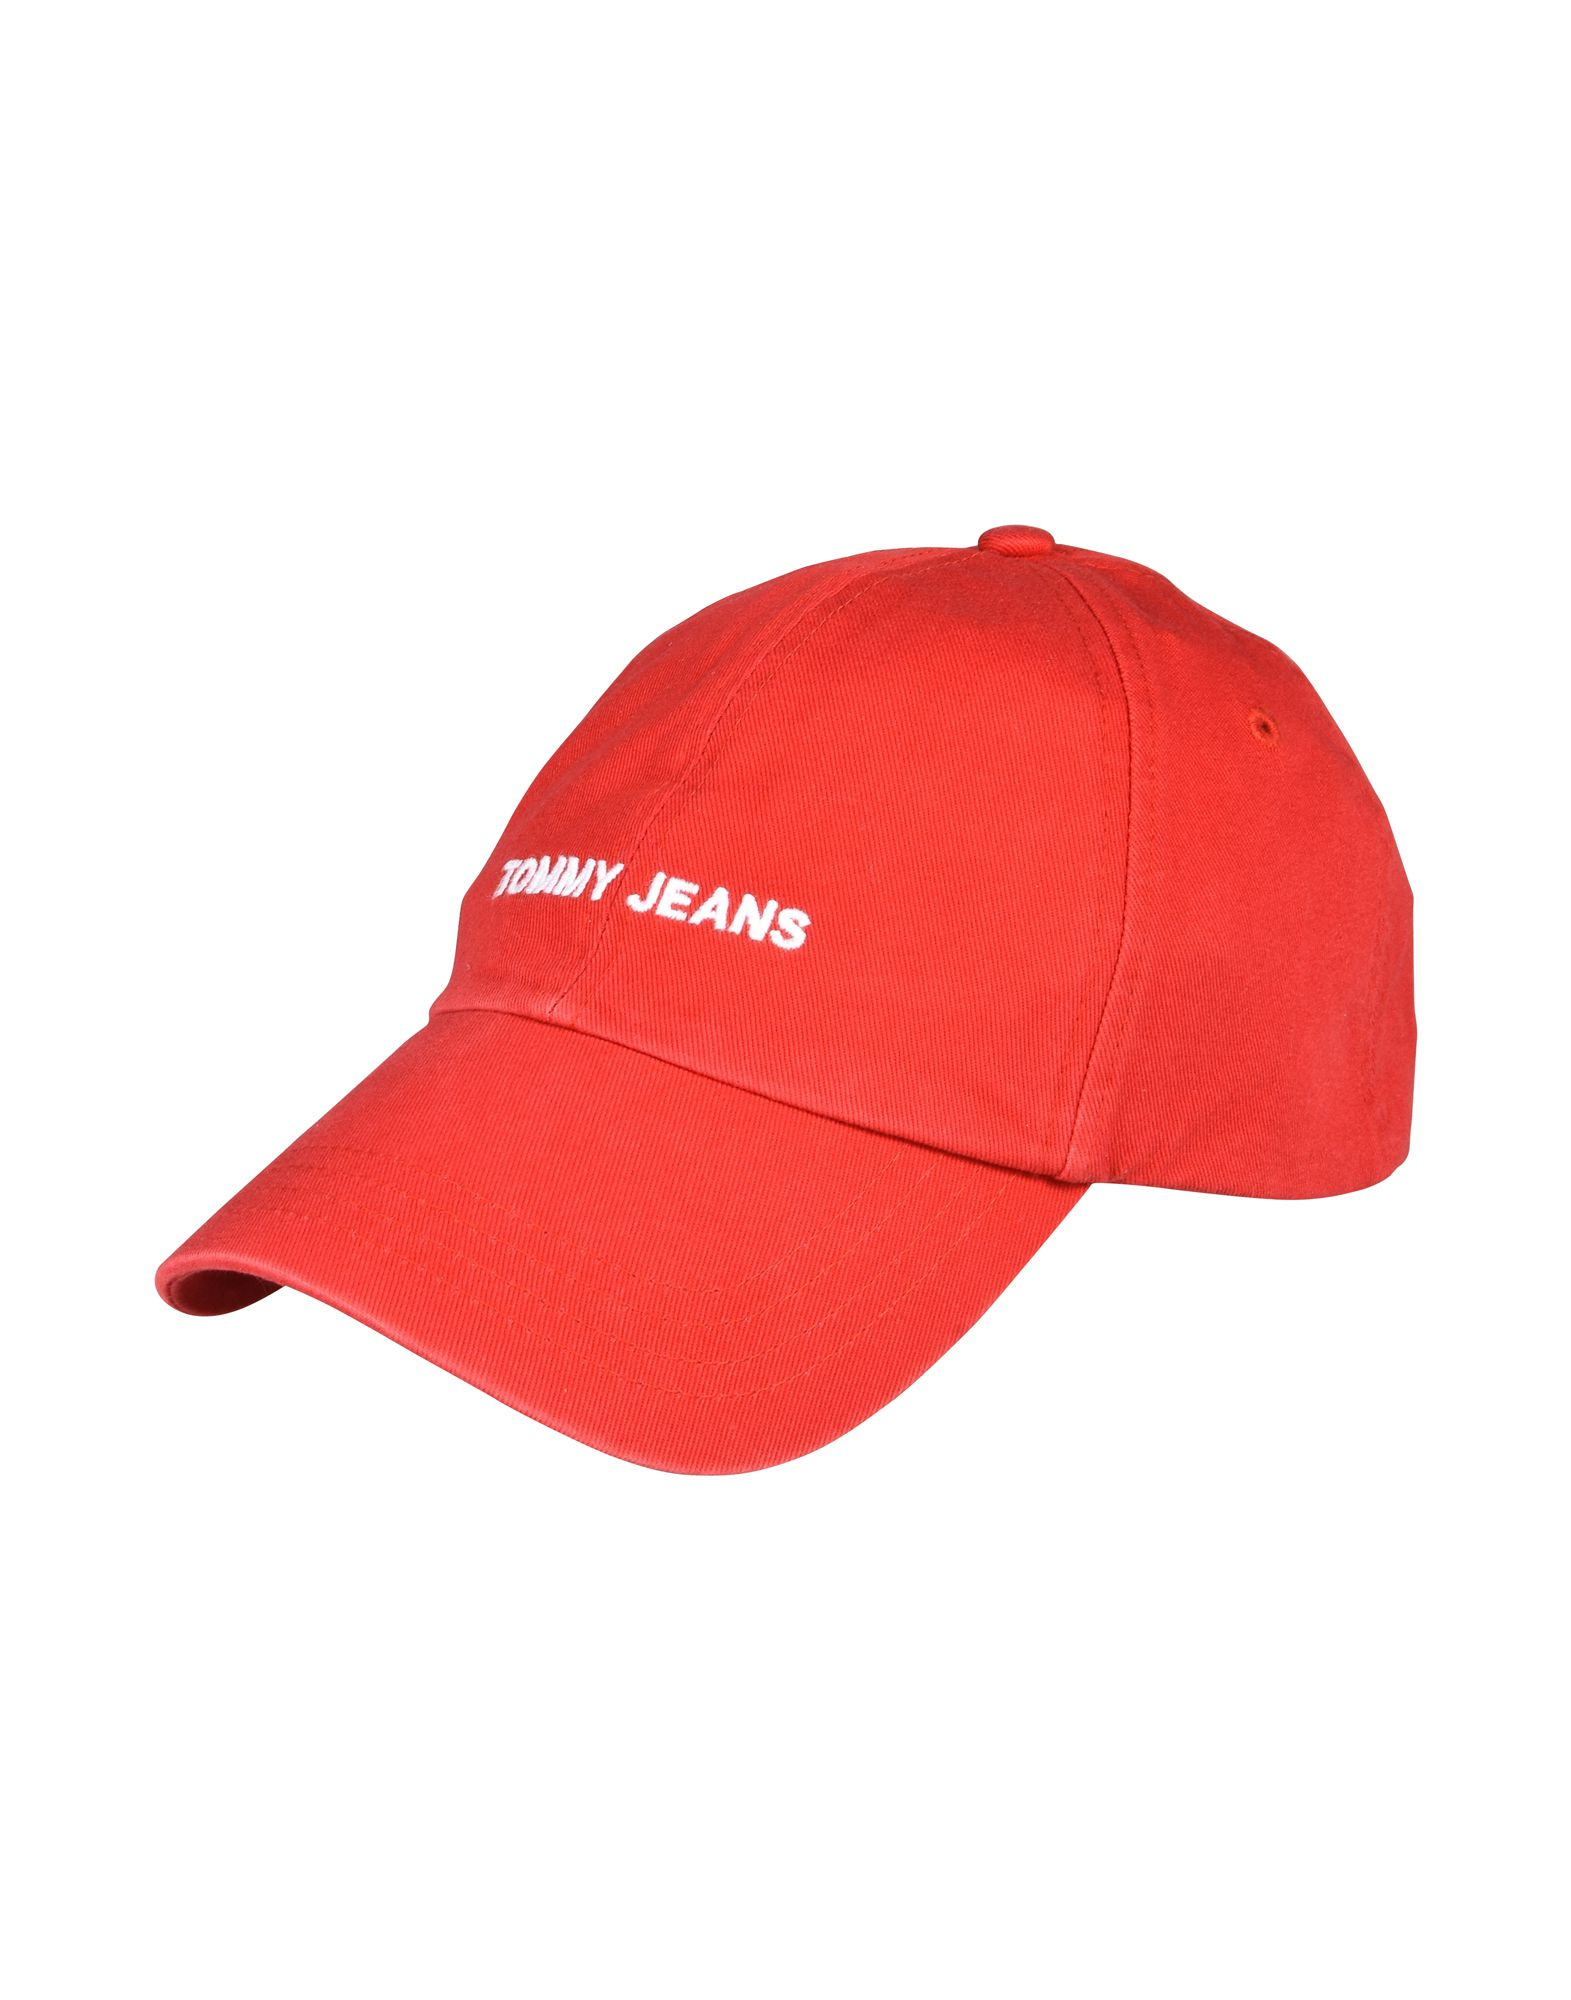 Tommy Jeans Hats In Red  ebb9b2c1f71